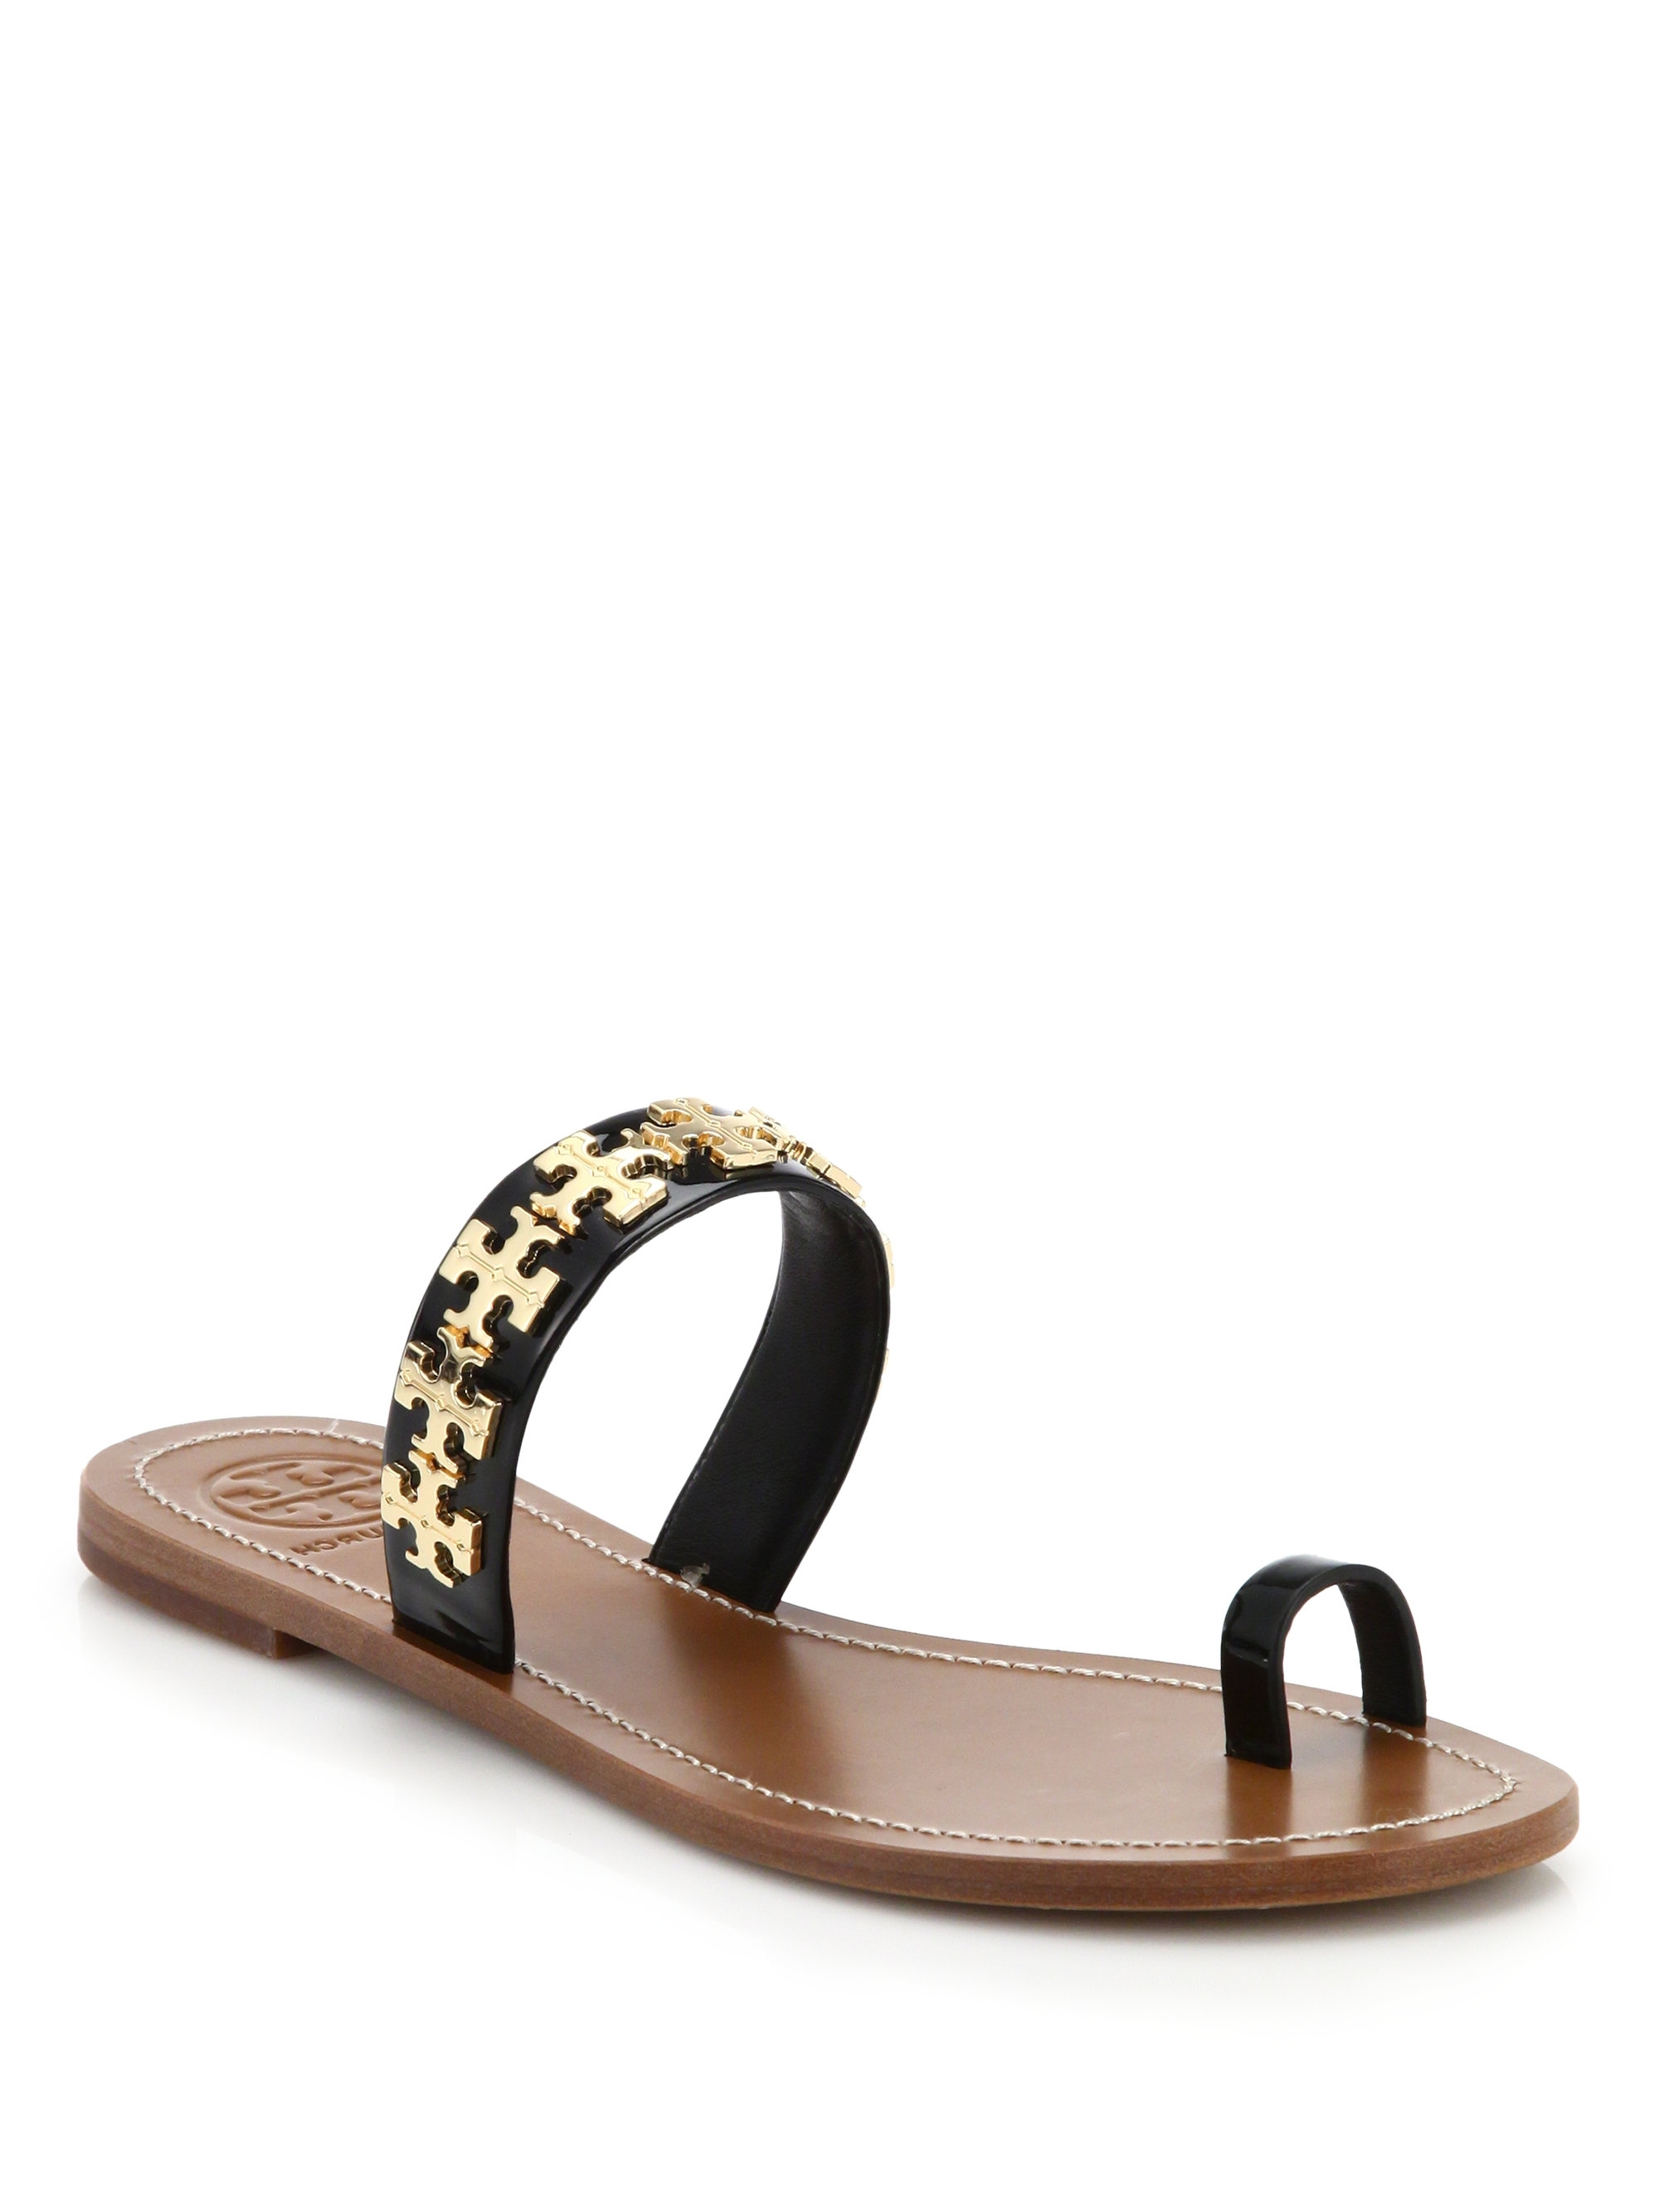 Lyst – Tory Burch Val Metal Logo & Leather Toe Ring Sandals In In Recent Macy's Toe Rings (View 12 of 15)